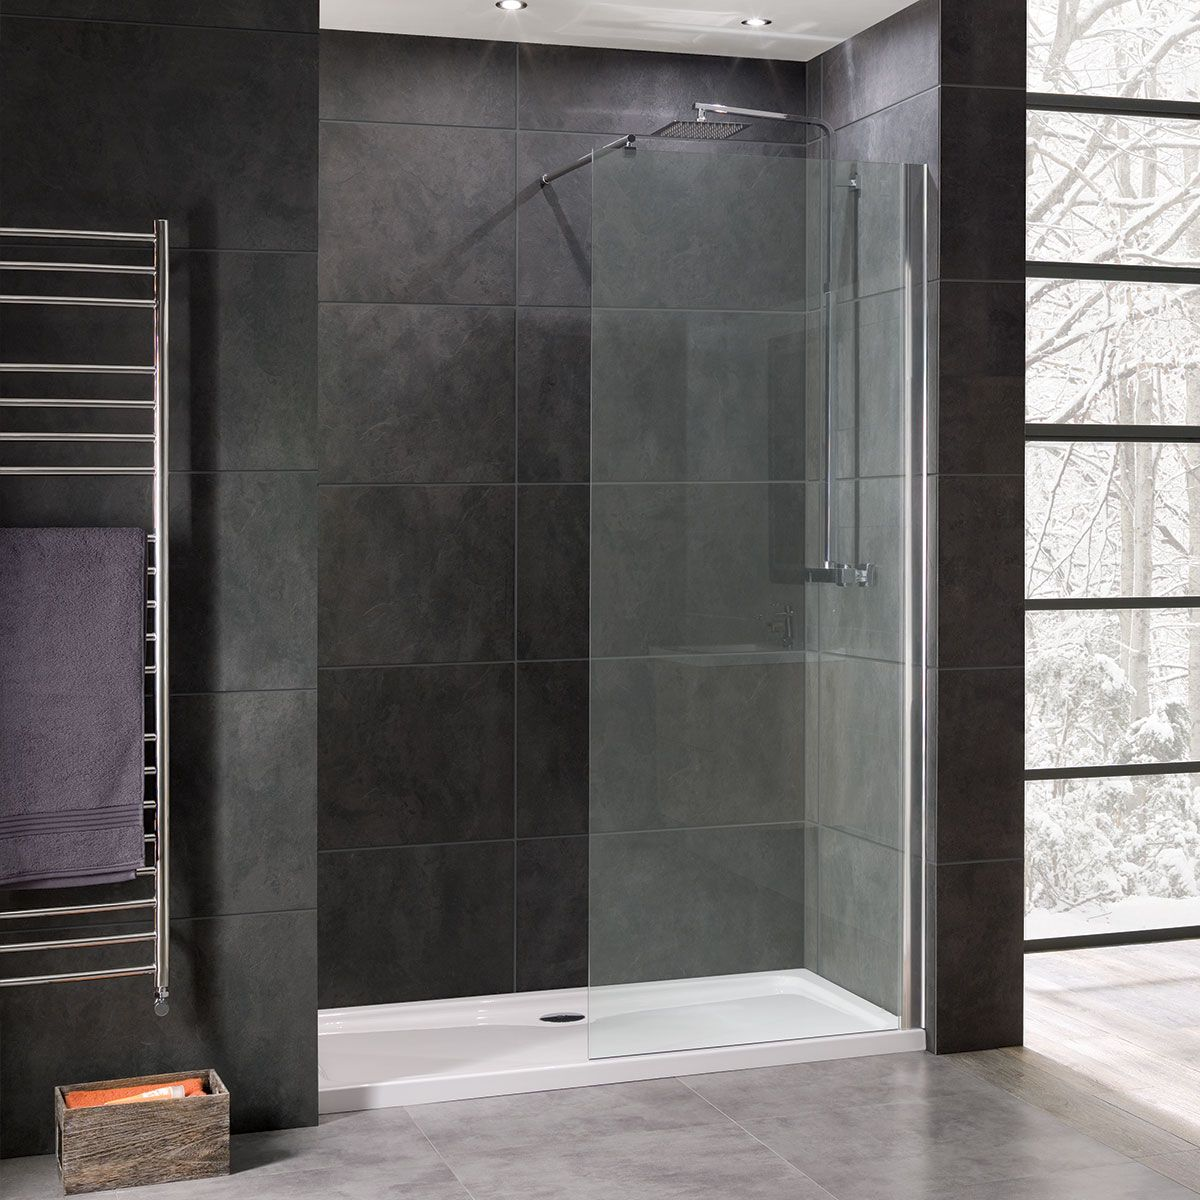 coral8mmwetroomglassshowerpanel1000mm